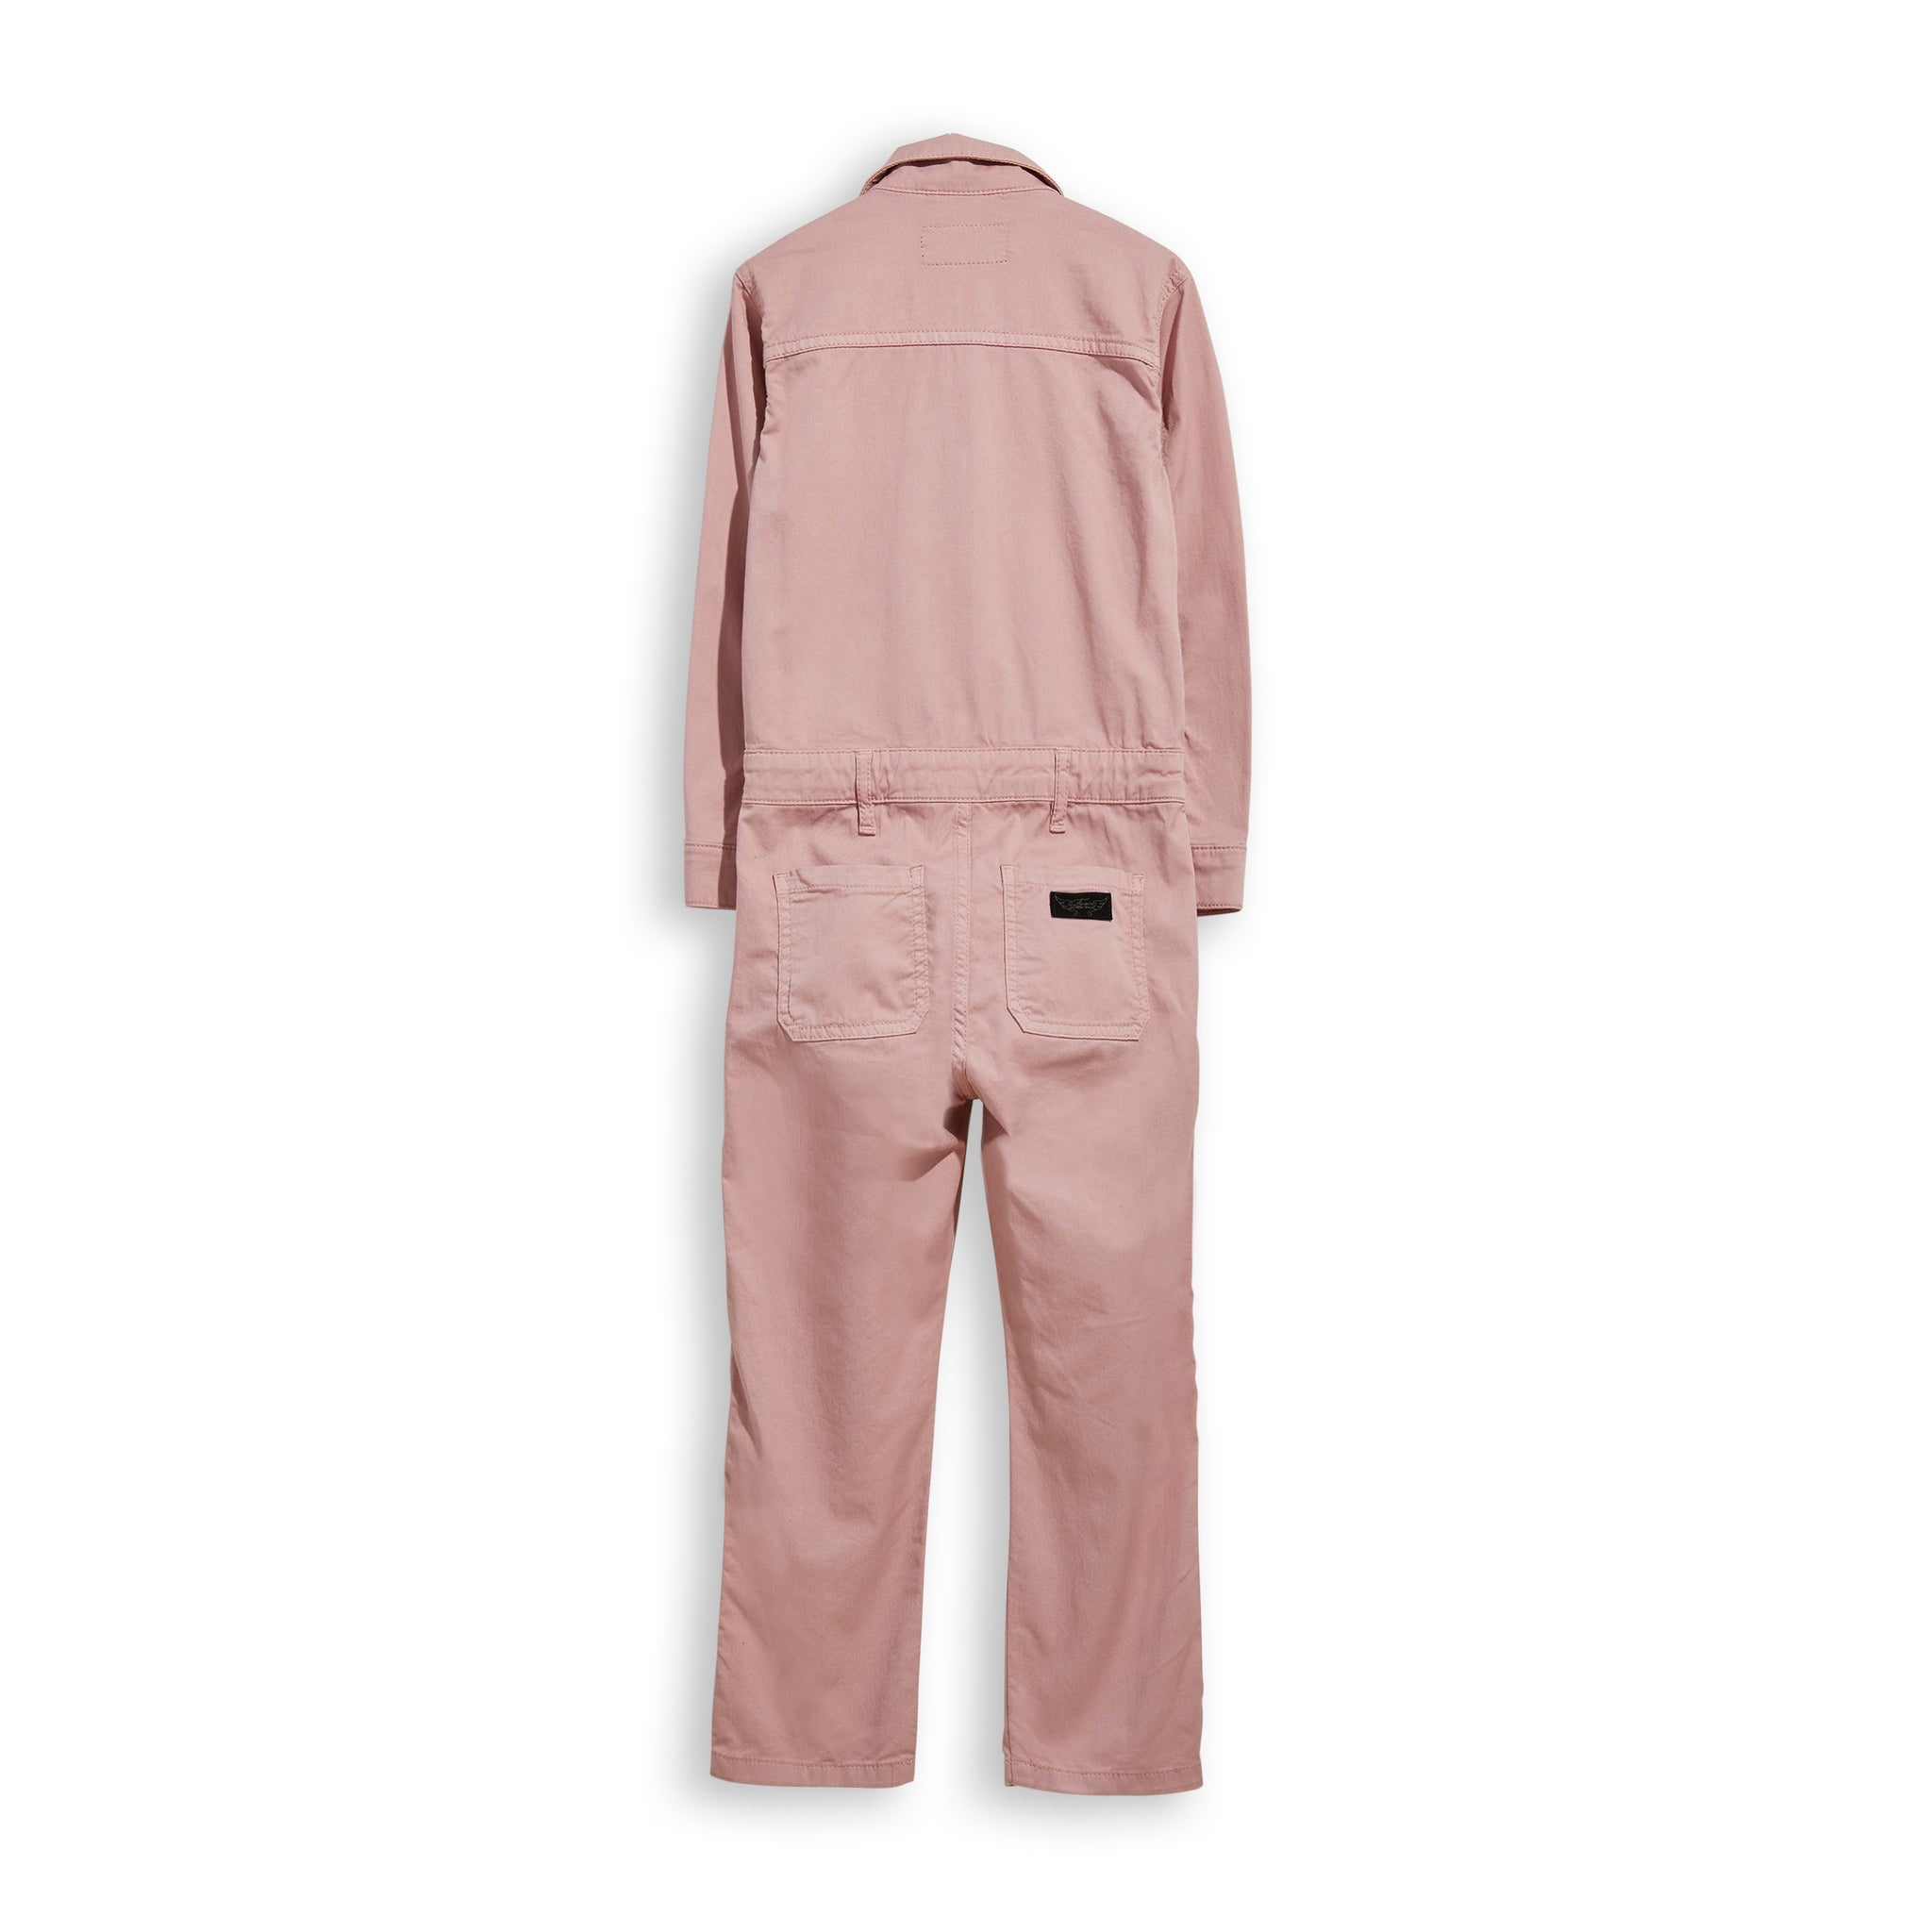 BROOK Pale Pink - Long Sleeves Overall 2